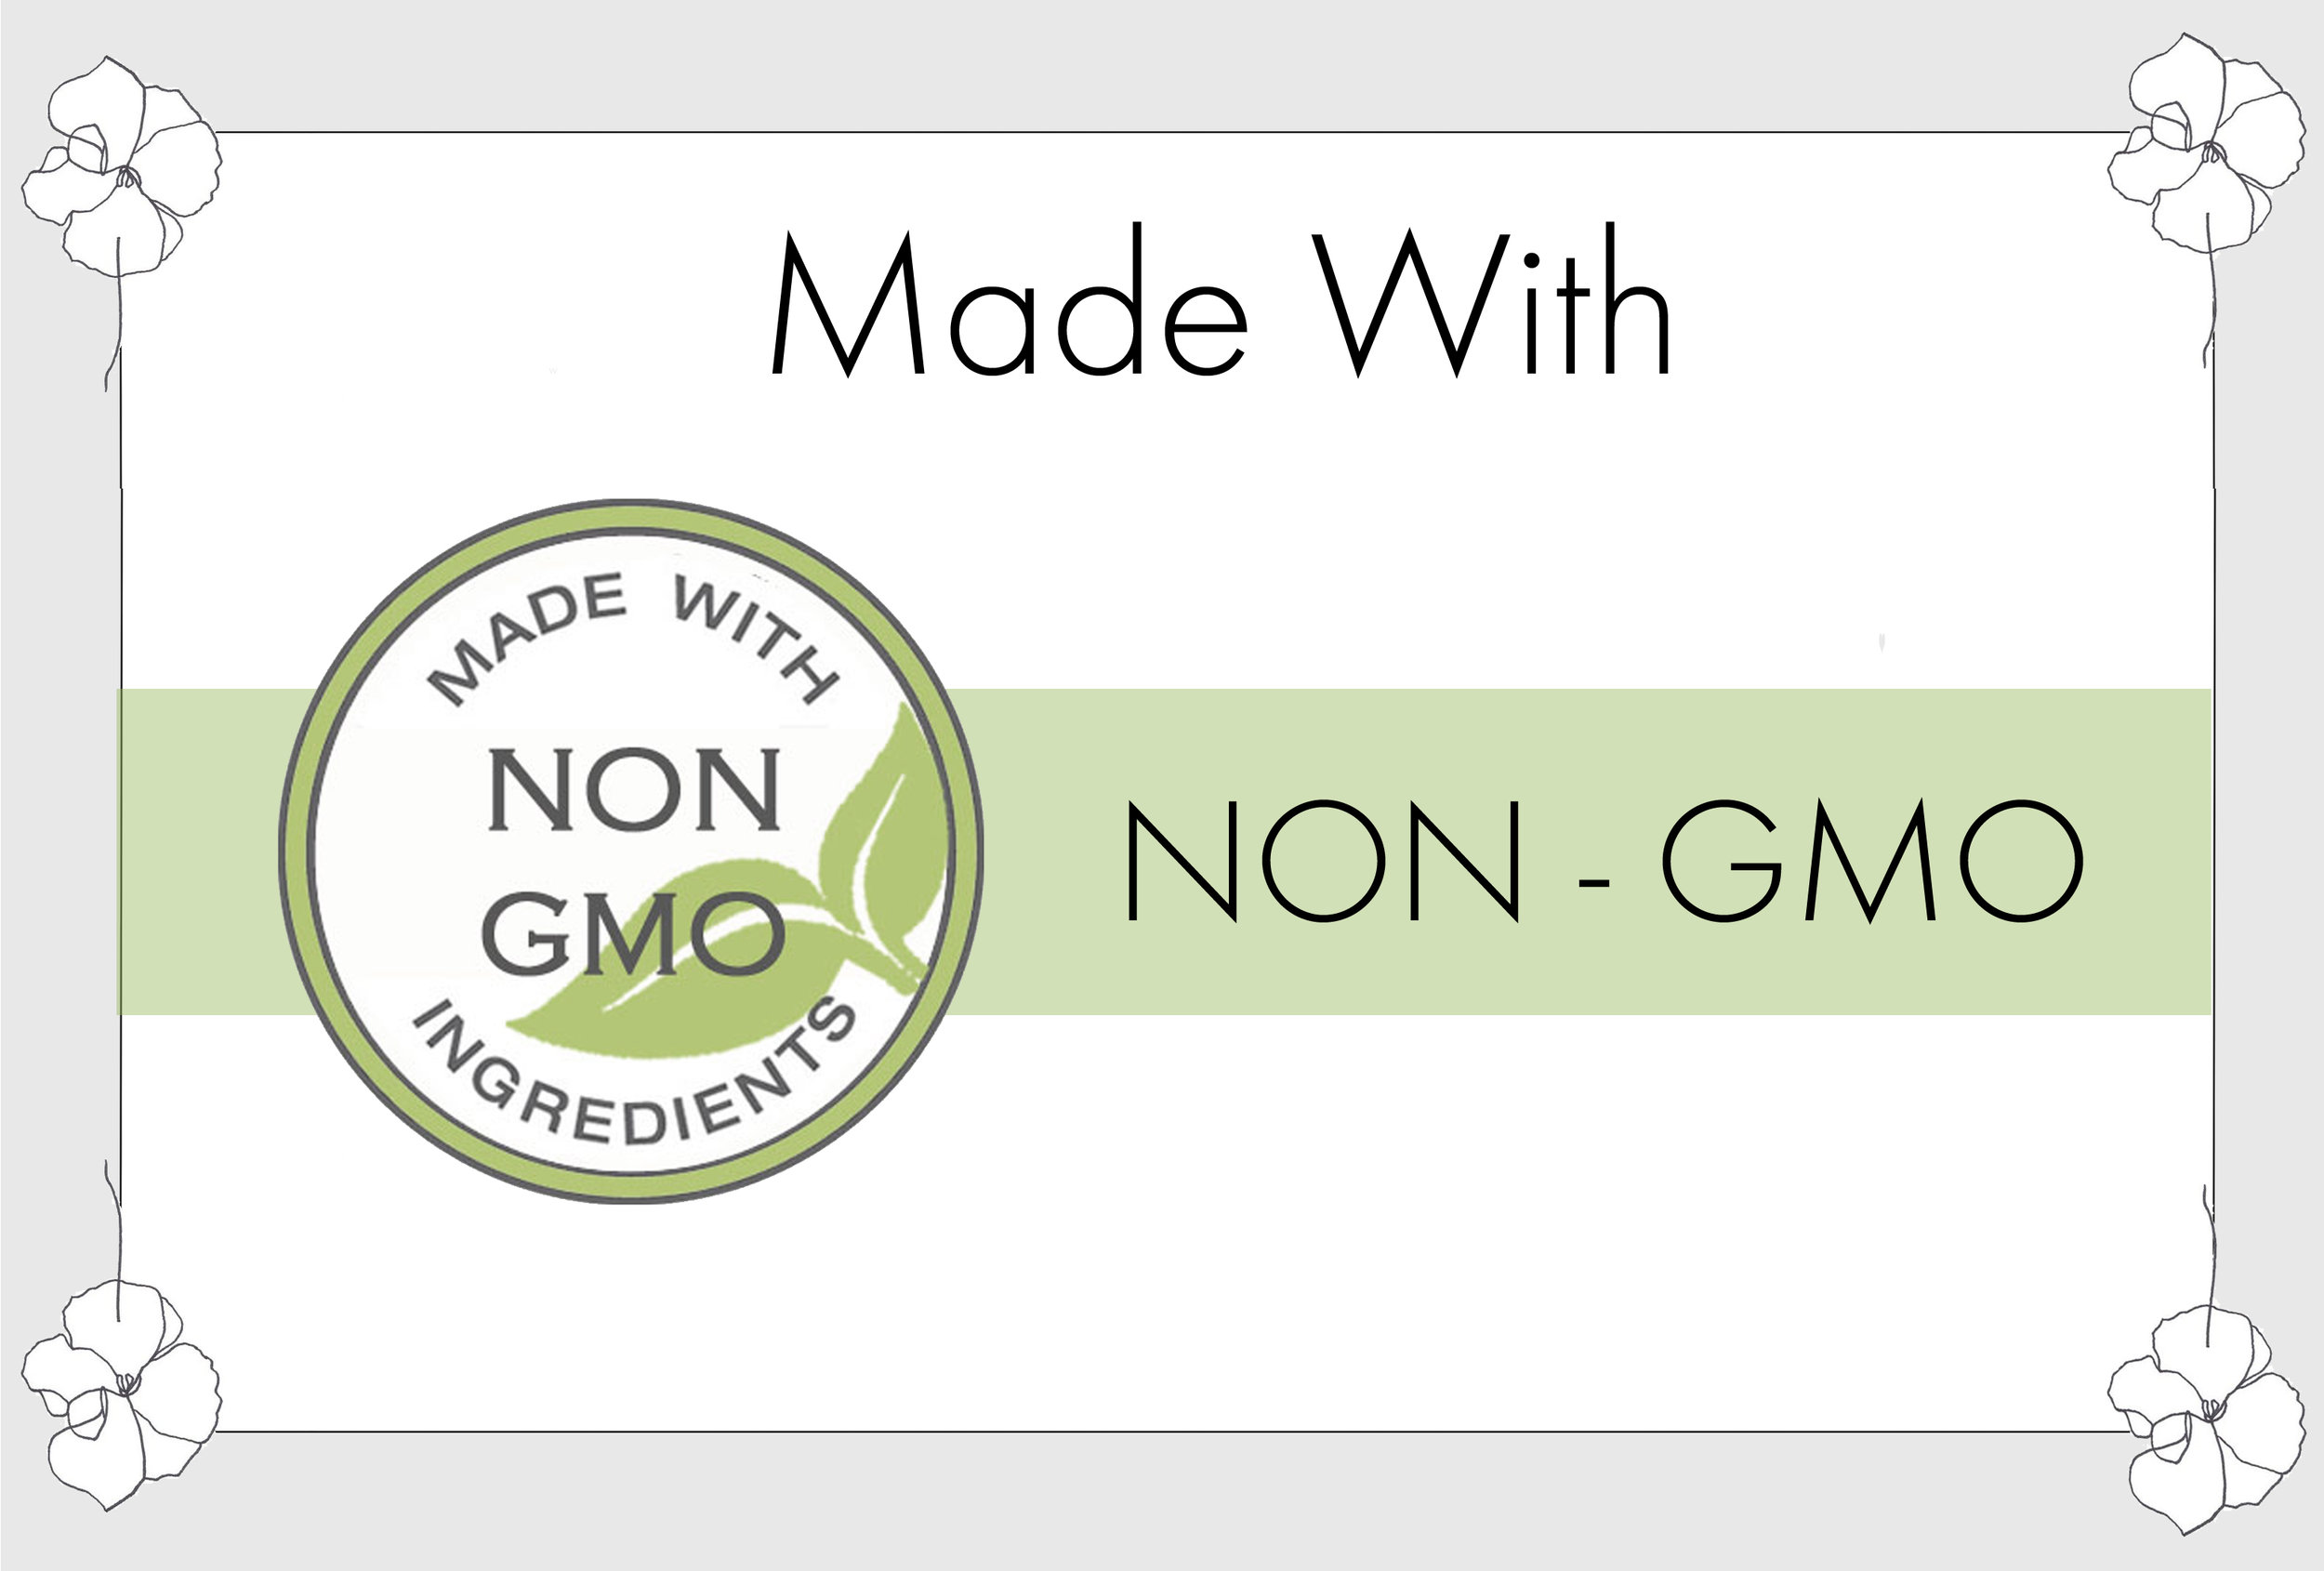 1 MADE WITH NON GMO.jpg